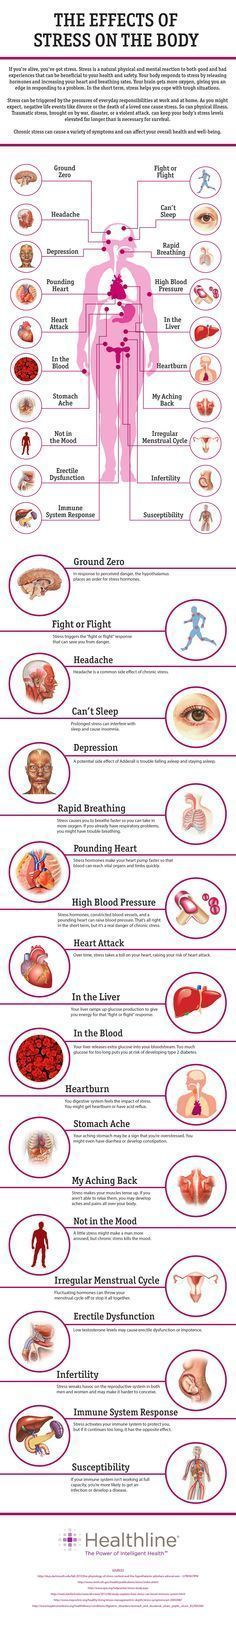 20 Effects Of Stress On The Body=> http://www.healthline.com/health/stress/effects-on-body #stress #InsomniaHacks